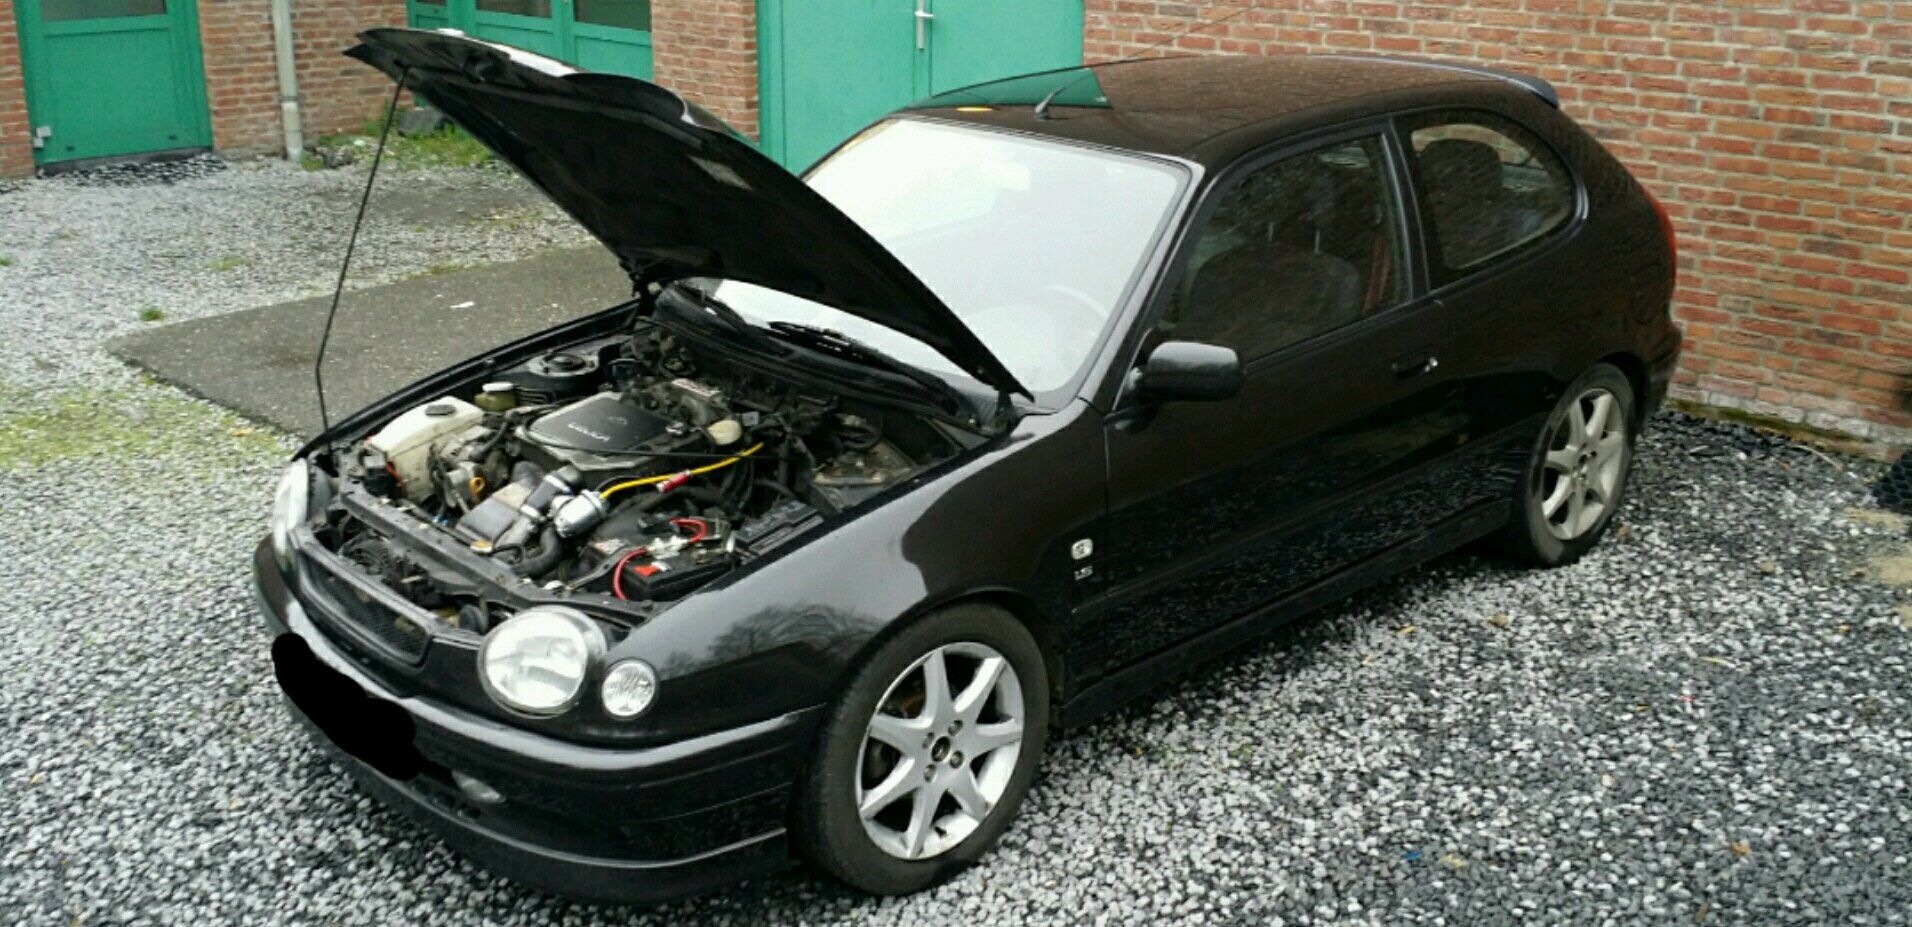 1999 toyota corolla g6r 3s gte gen 2 300bhp. Black Bedroom Furniture Sets. Home Design Ideas